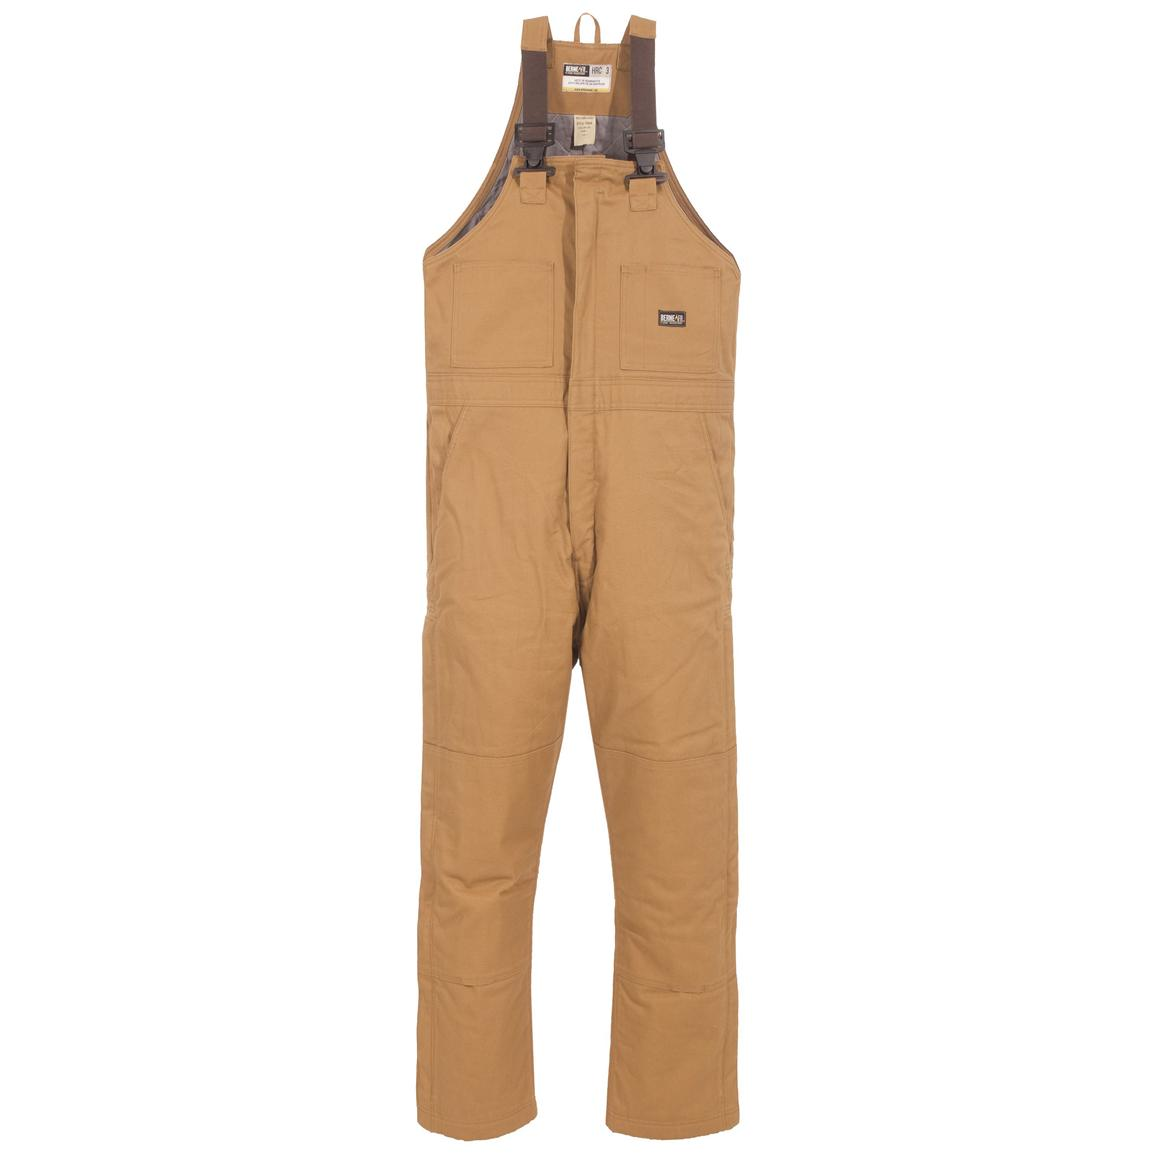 Berne® Flame-resistant Insulated Bib Overalls, Brown